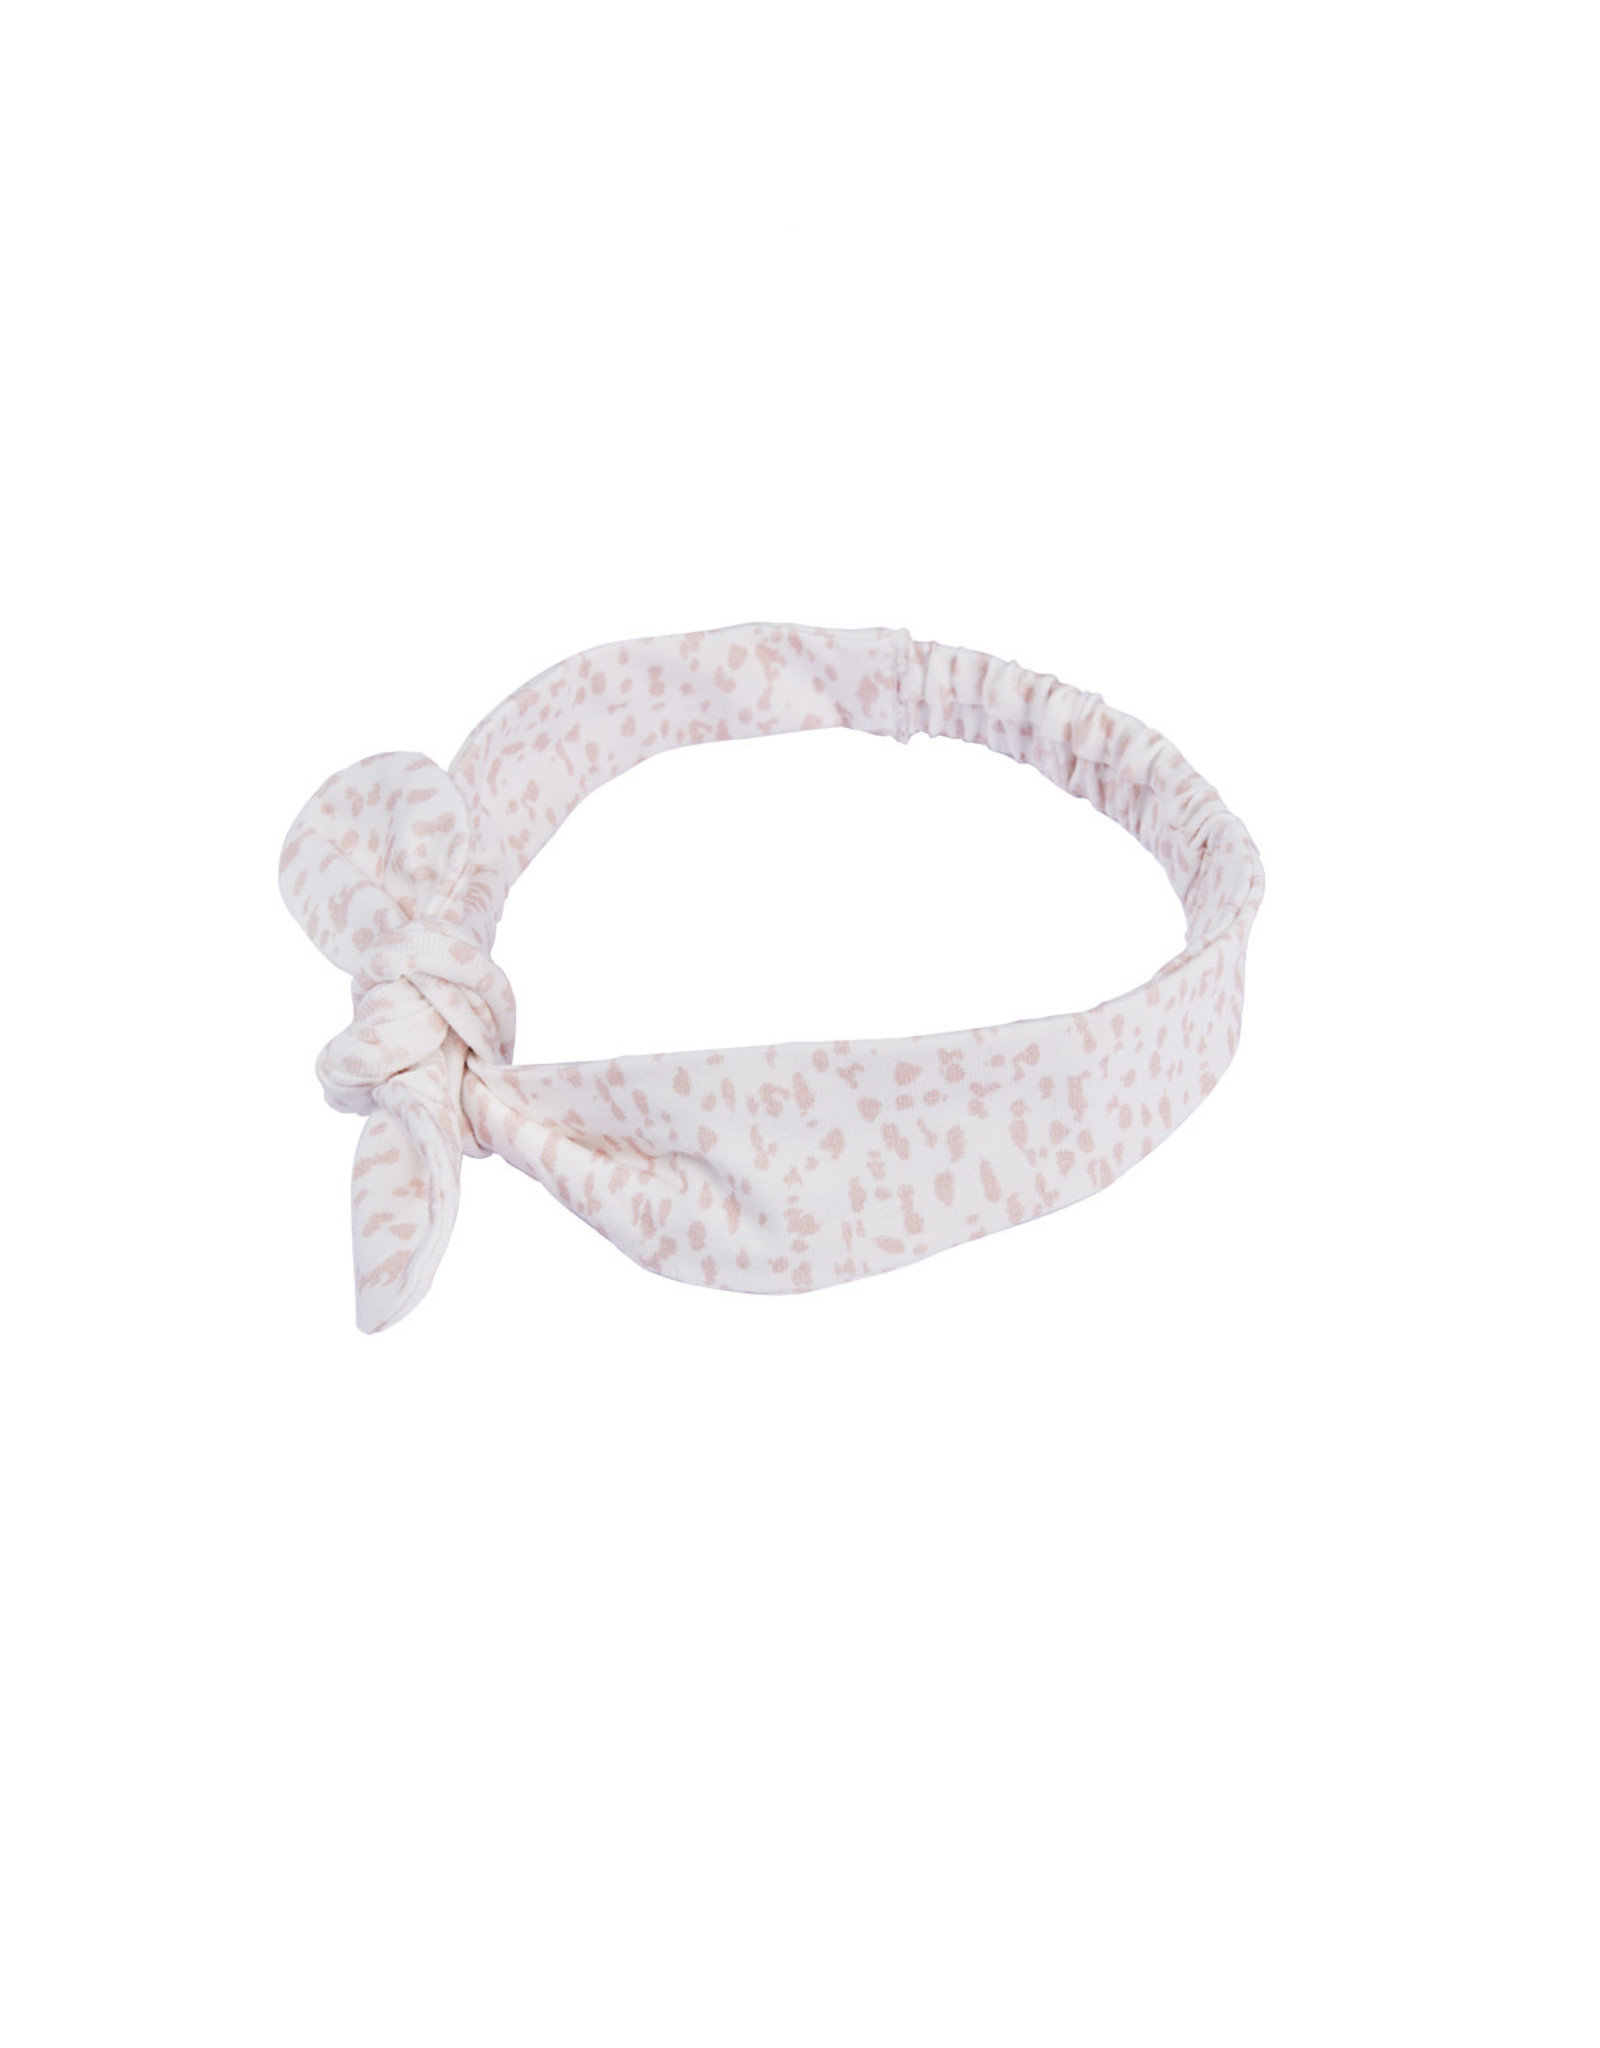 Mies & Co Mies & Co haarband Wild Child Chalk Pink